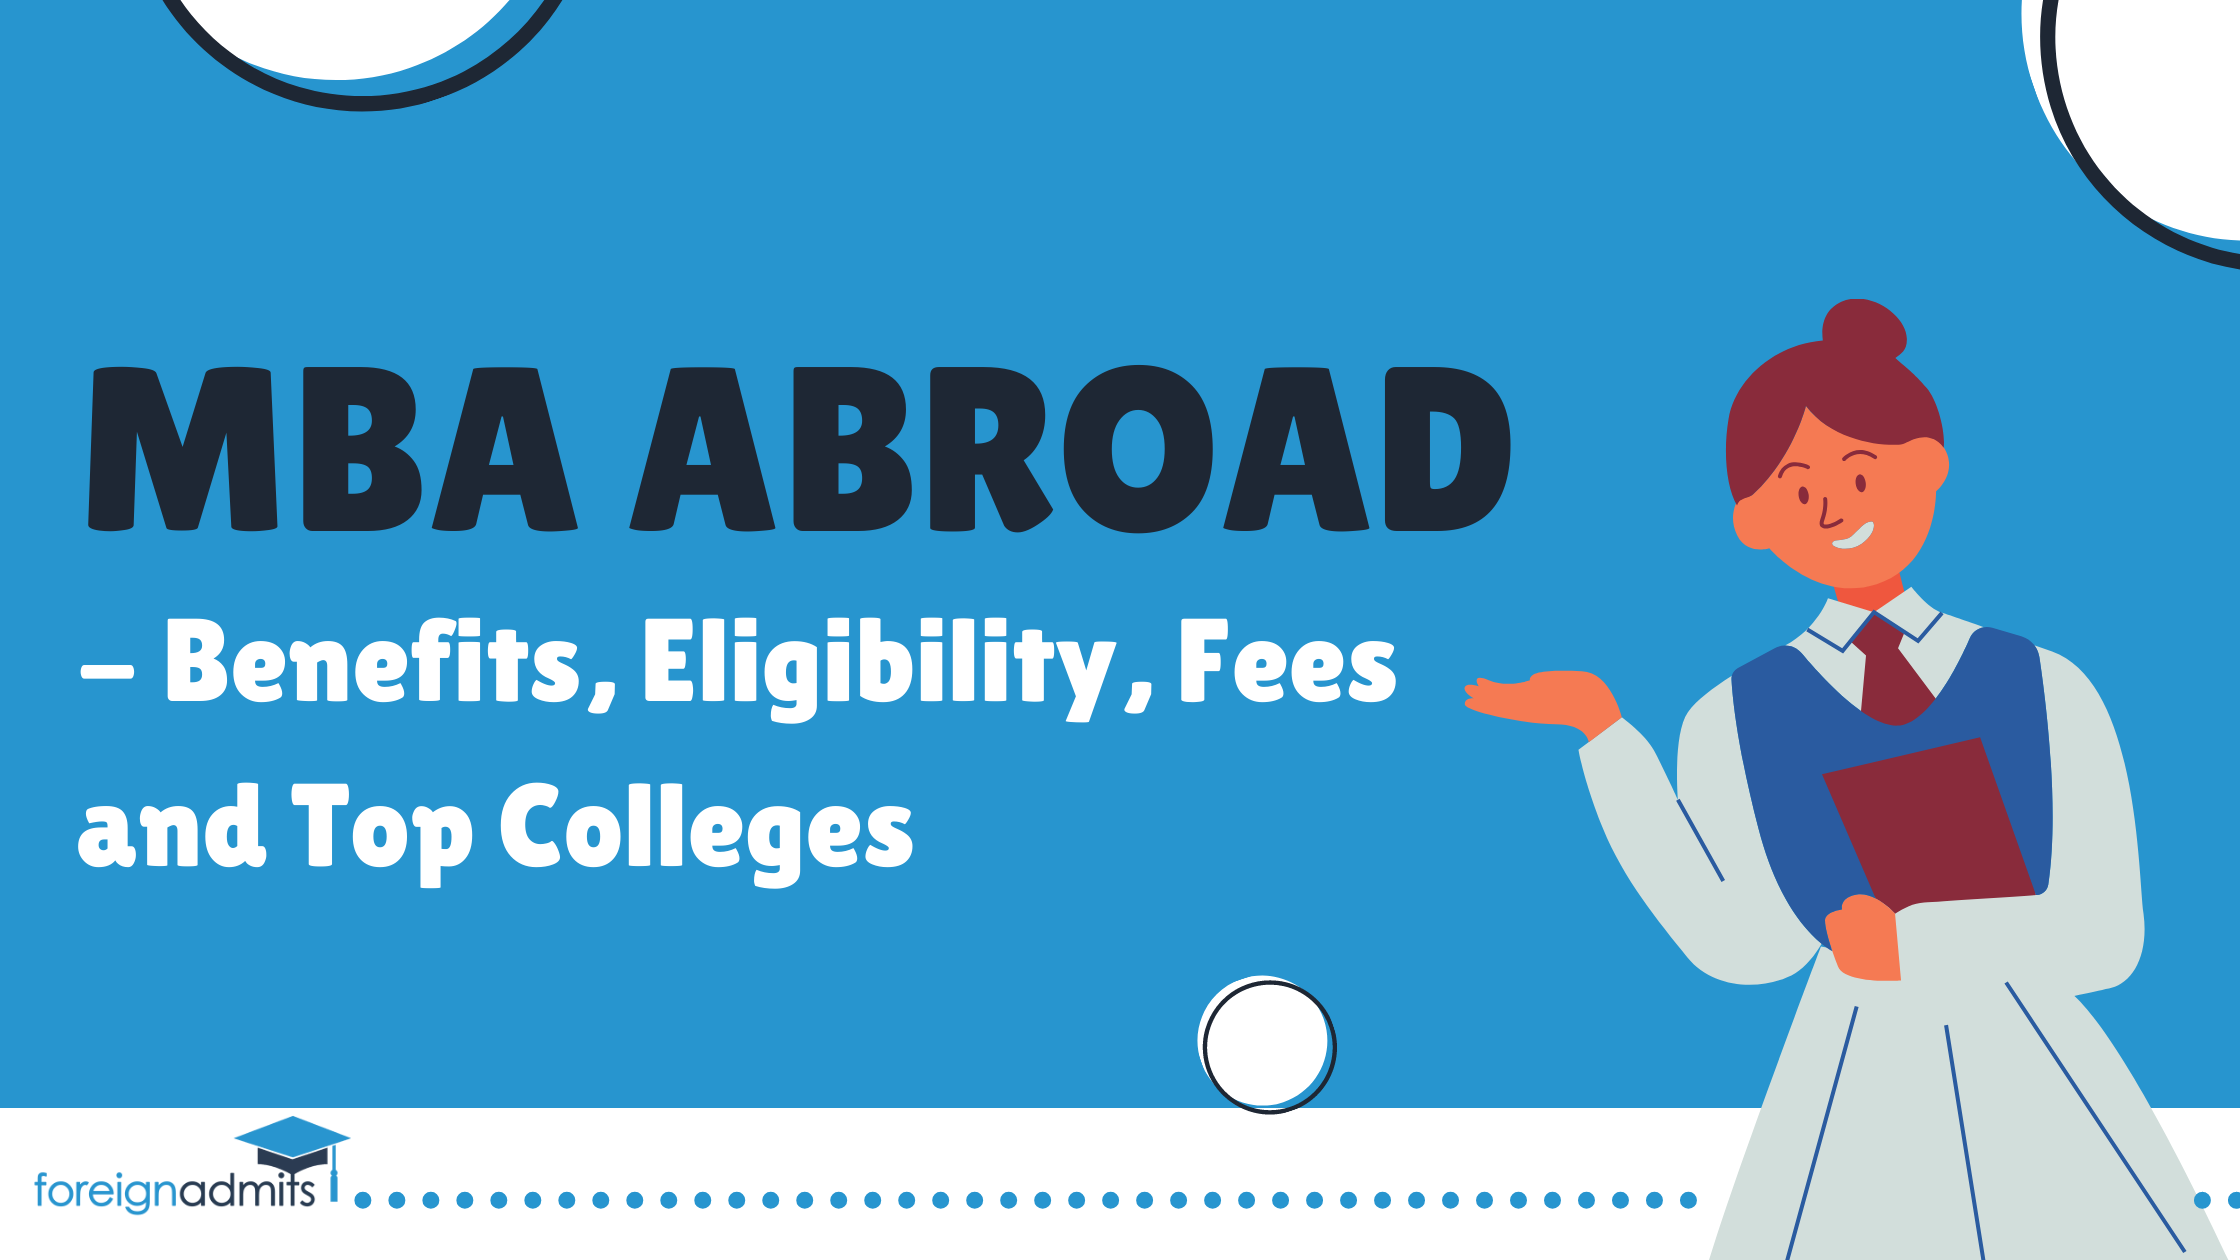 MBA Abroad - Benefits, Eligibility, Fees, and Top Colleges